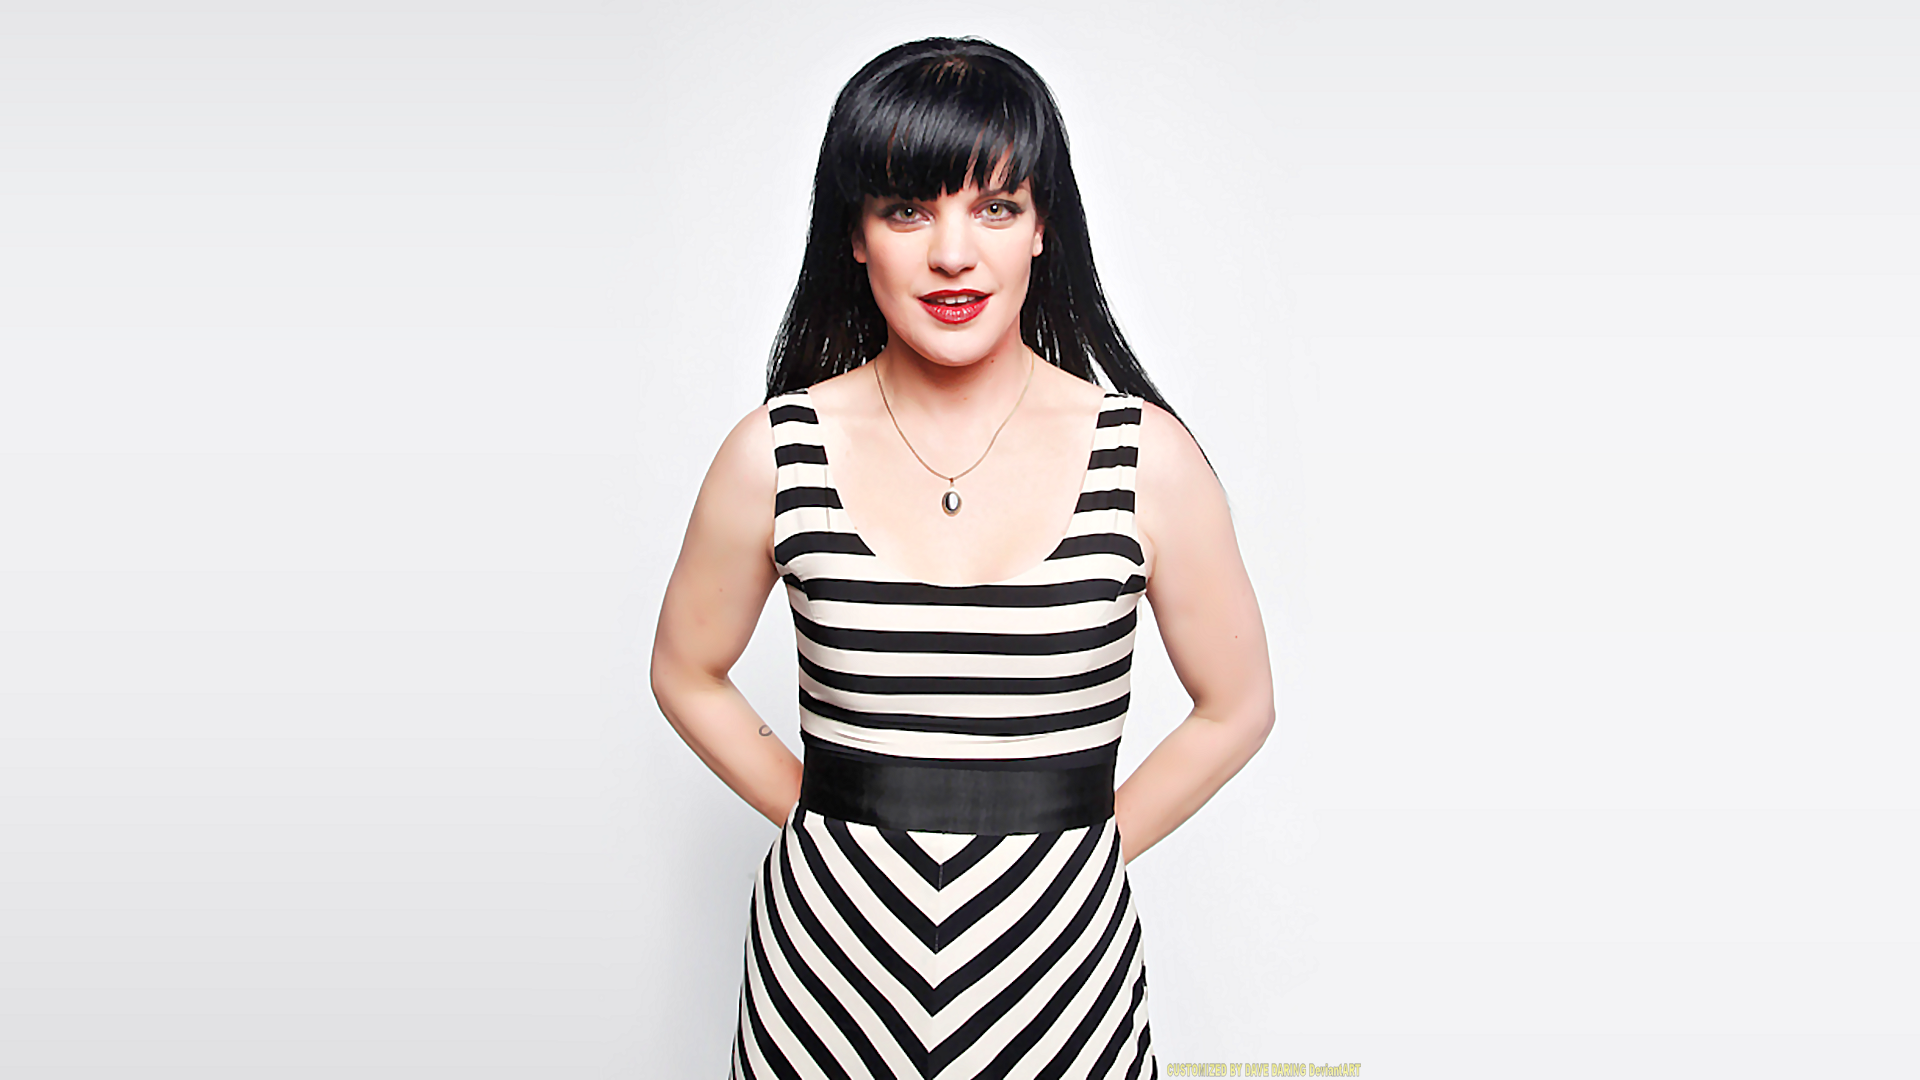 Pauley Perrette High Quality Background on Wallpapers Vista